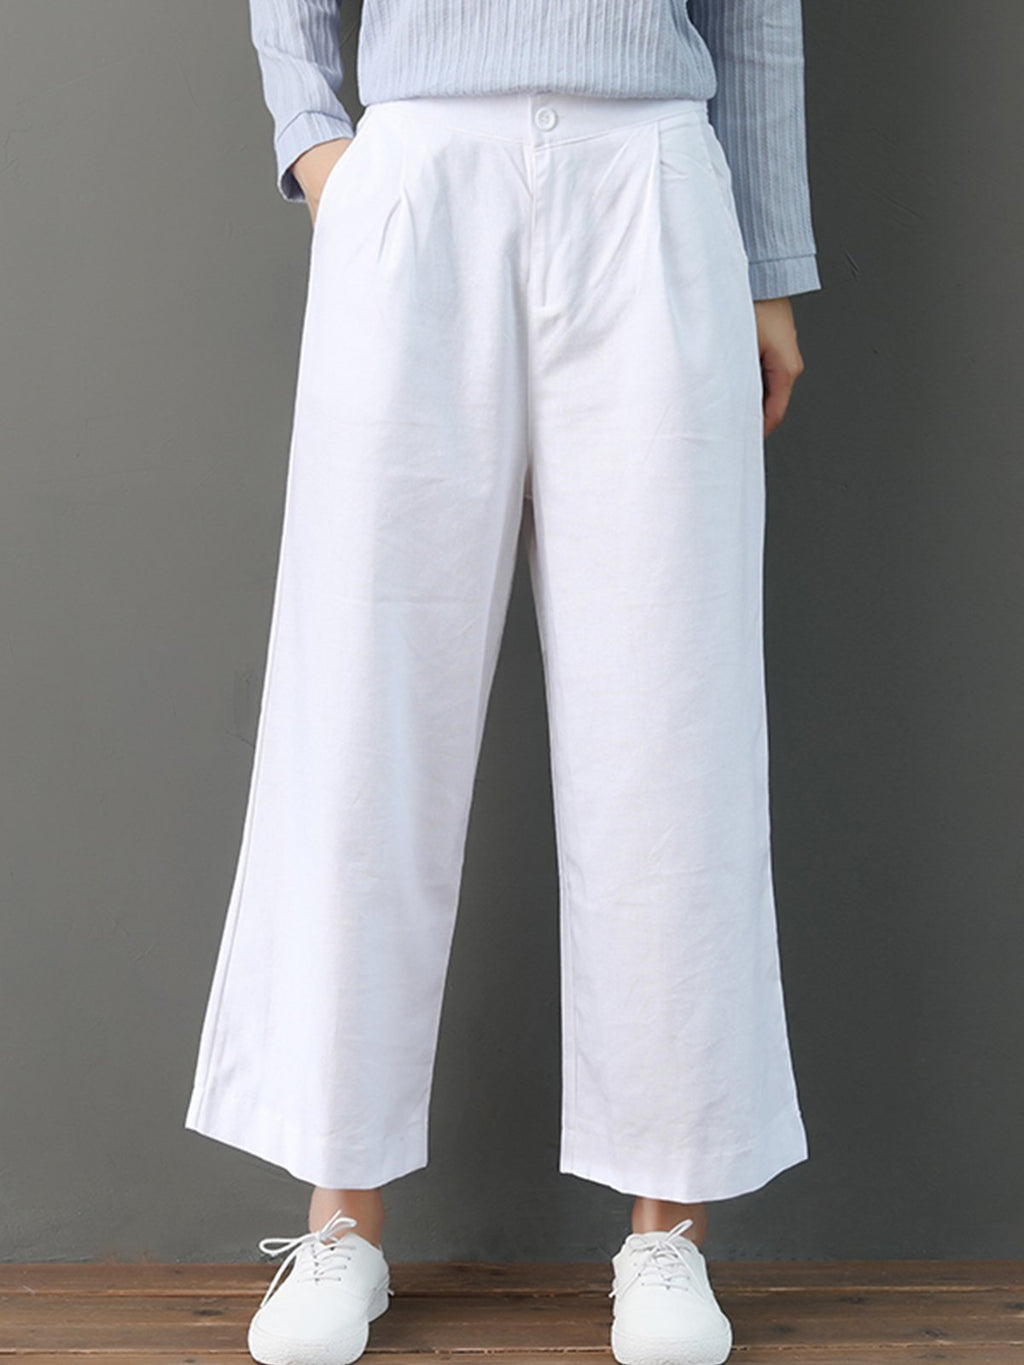 High Rise Straight Crop Length Linen/Cotton Pants